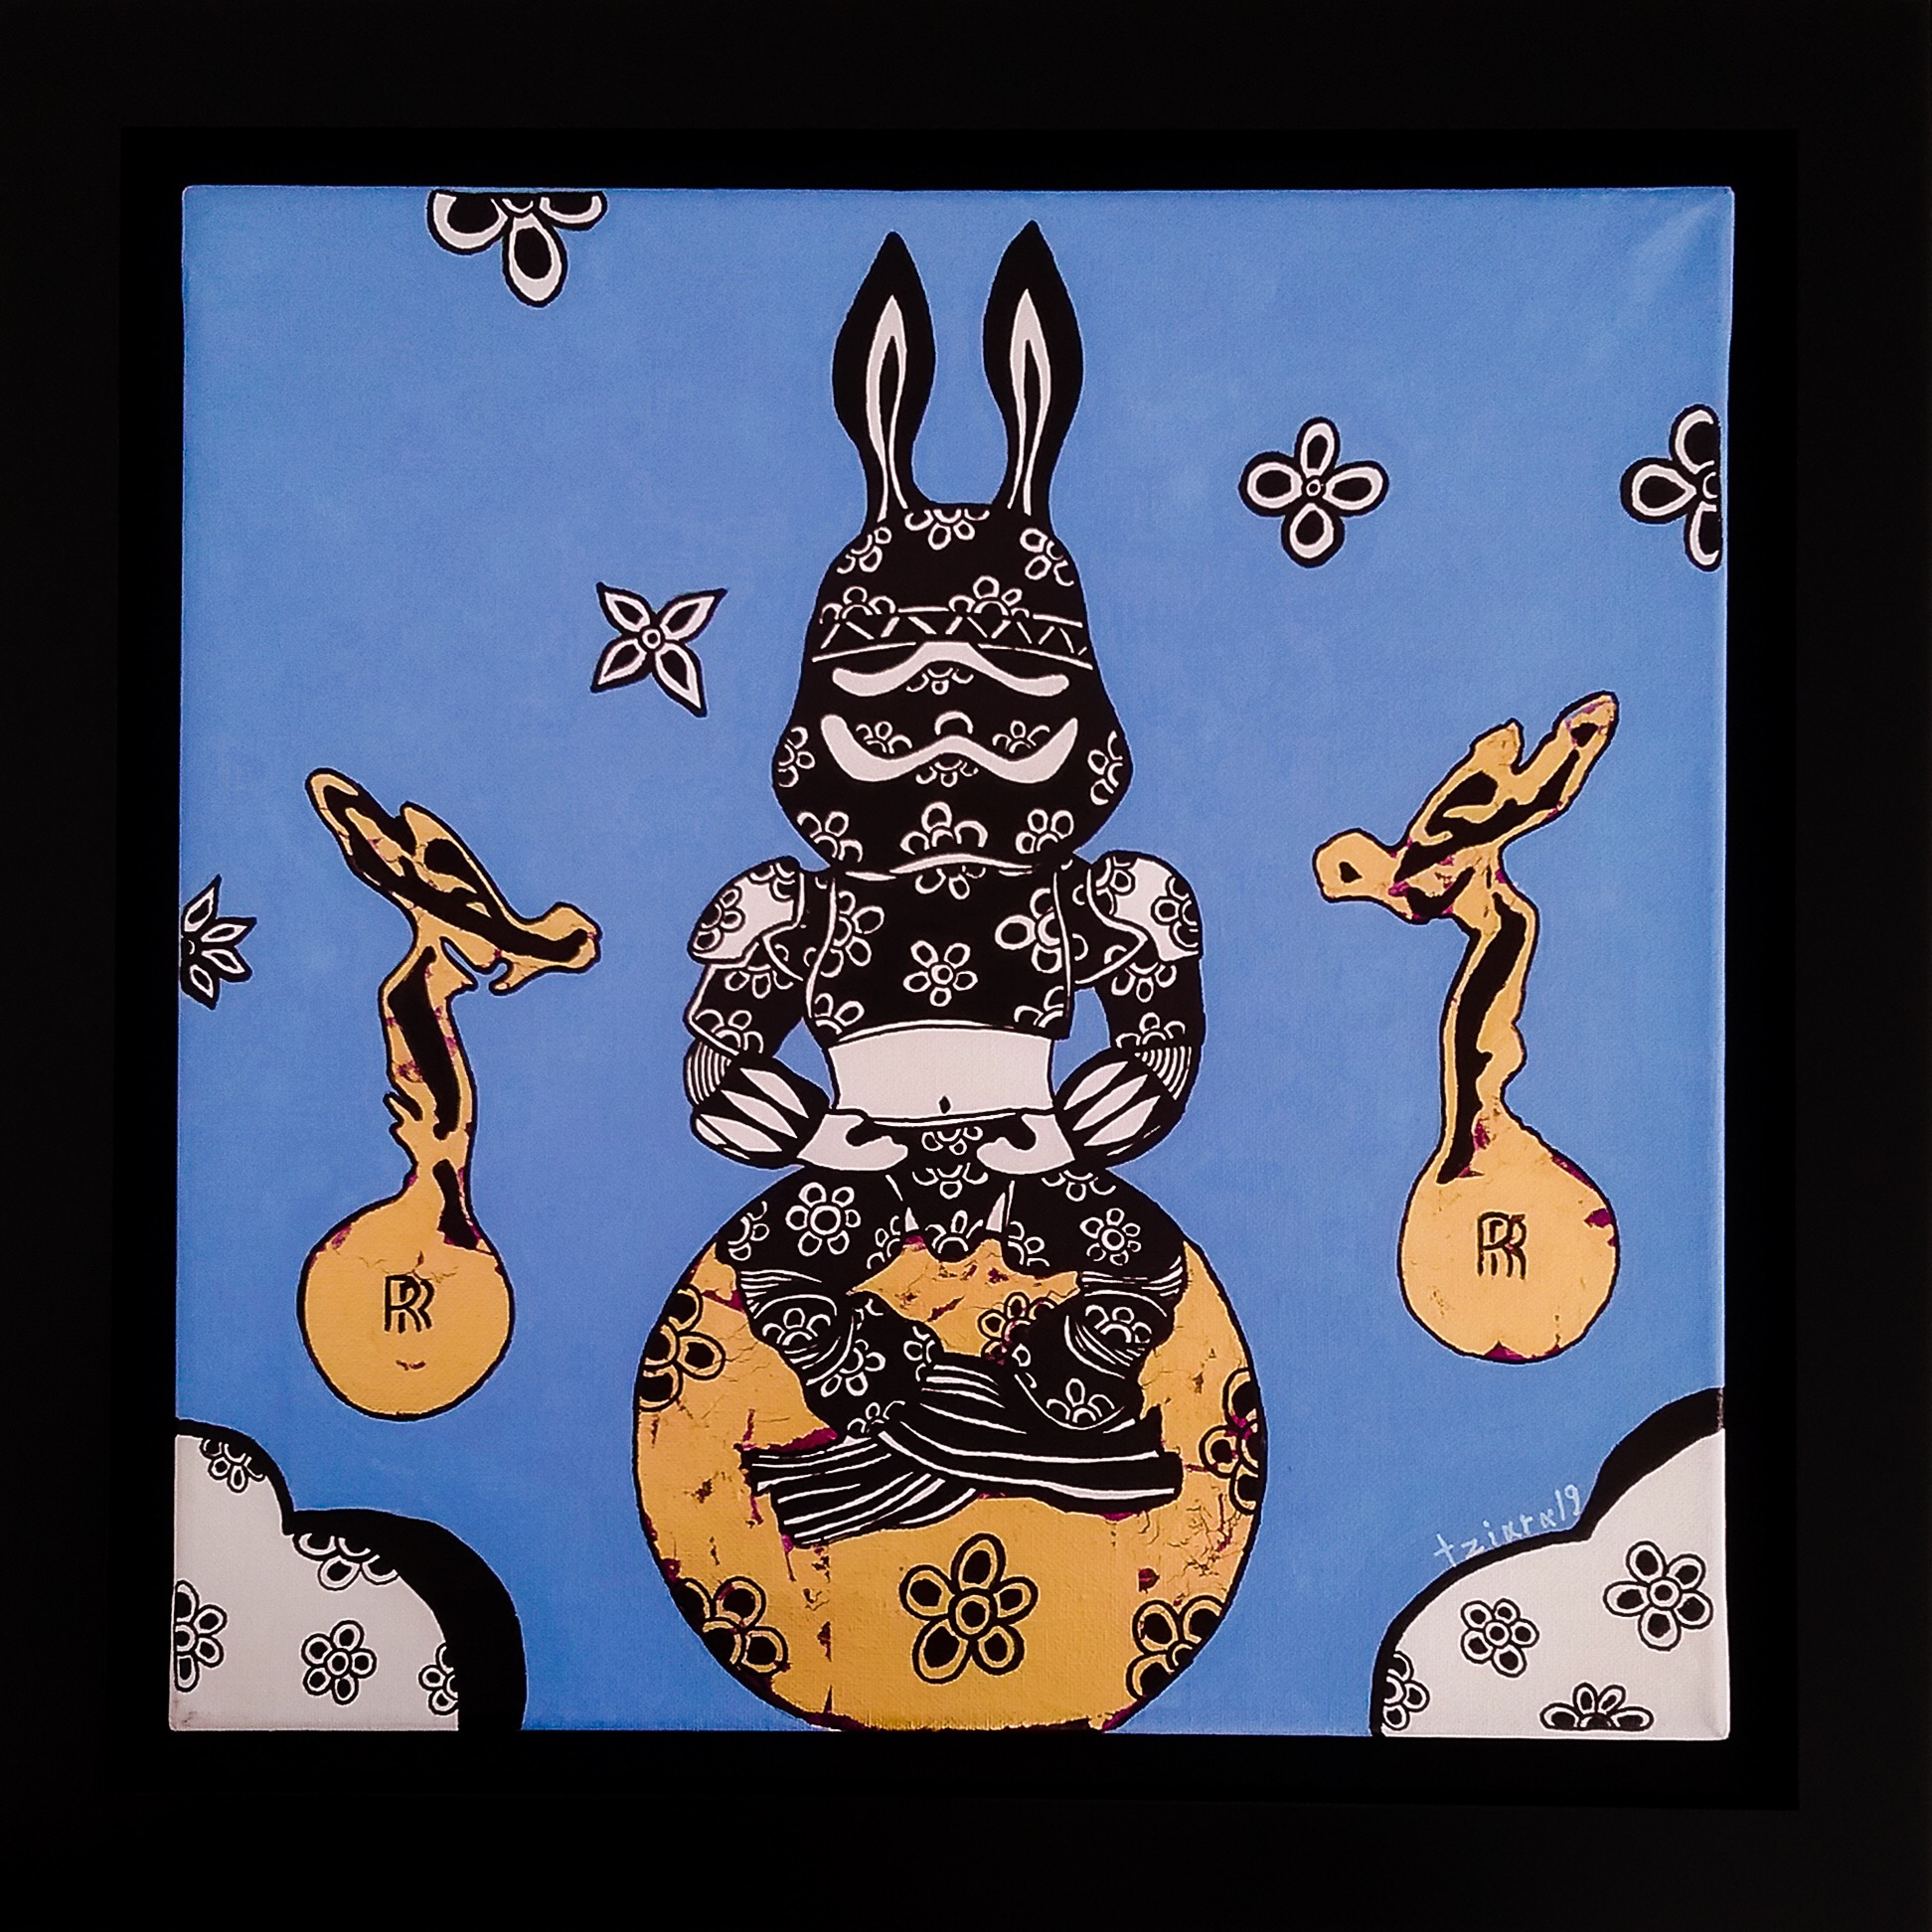 The Space Rabbit meditating in frame